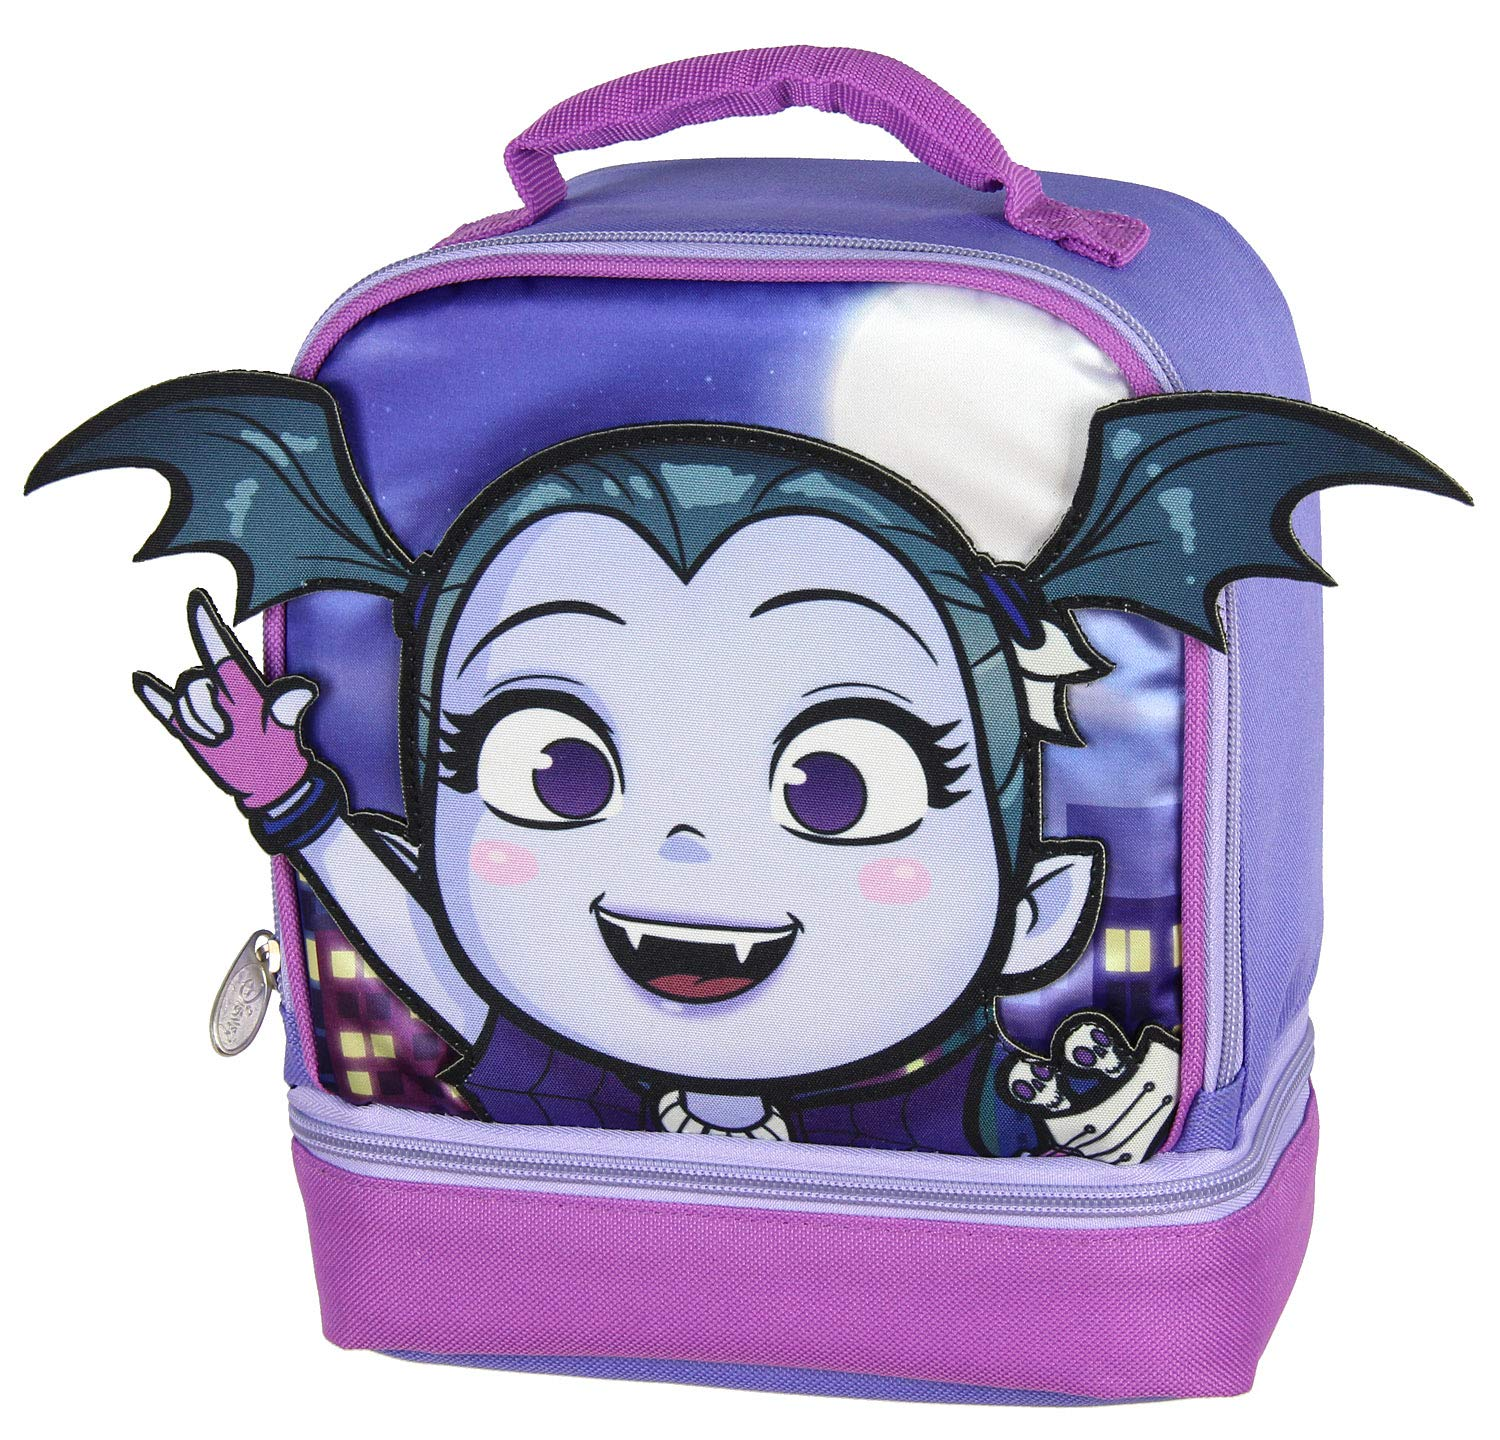 DC Comics Flash Lunch Box Soft Kit Insulated Cooler Circle Bag Accessory Innovations